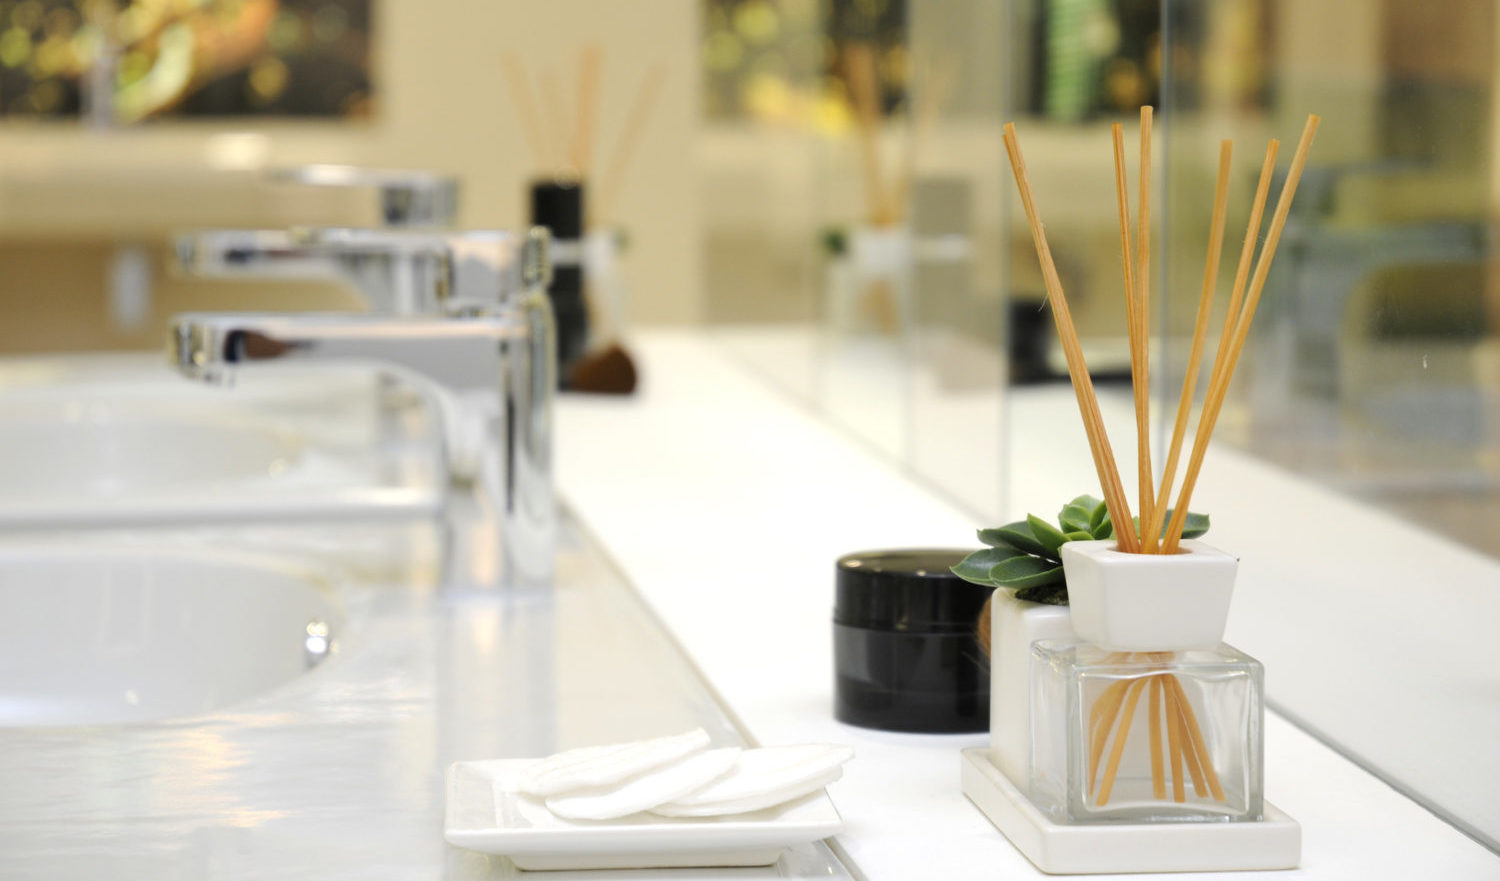 bathroom interior design - perfume ambience diffuser with wooden sticks.